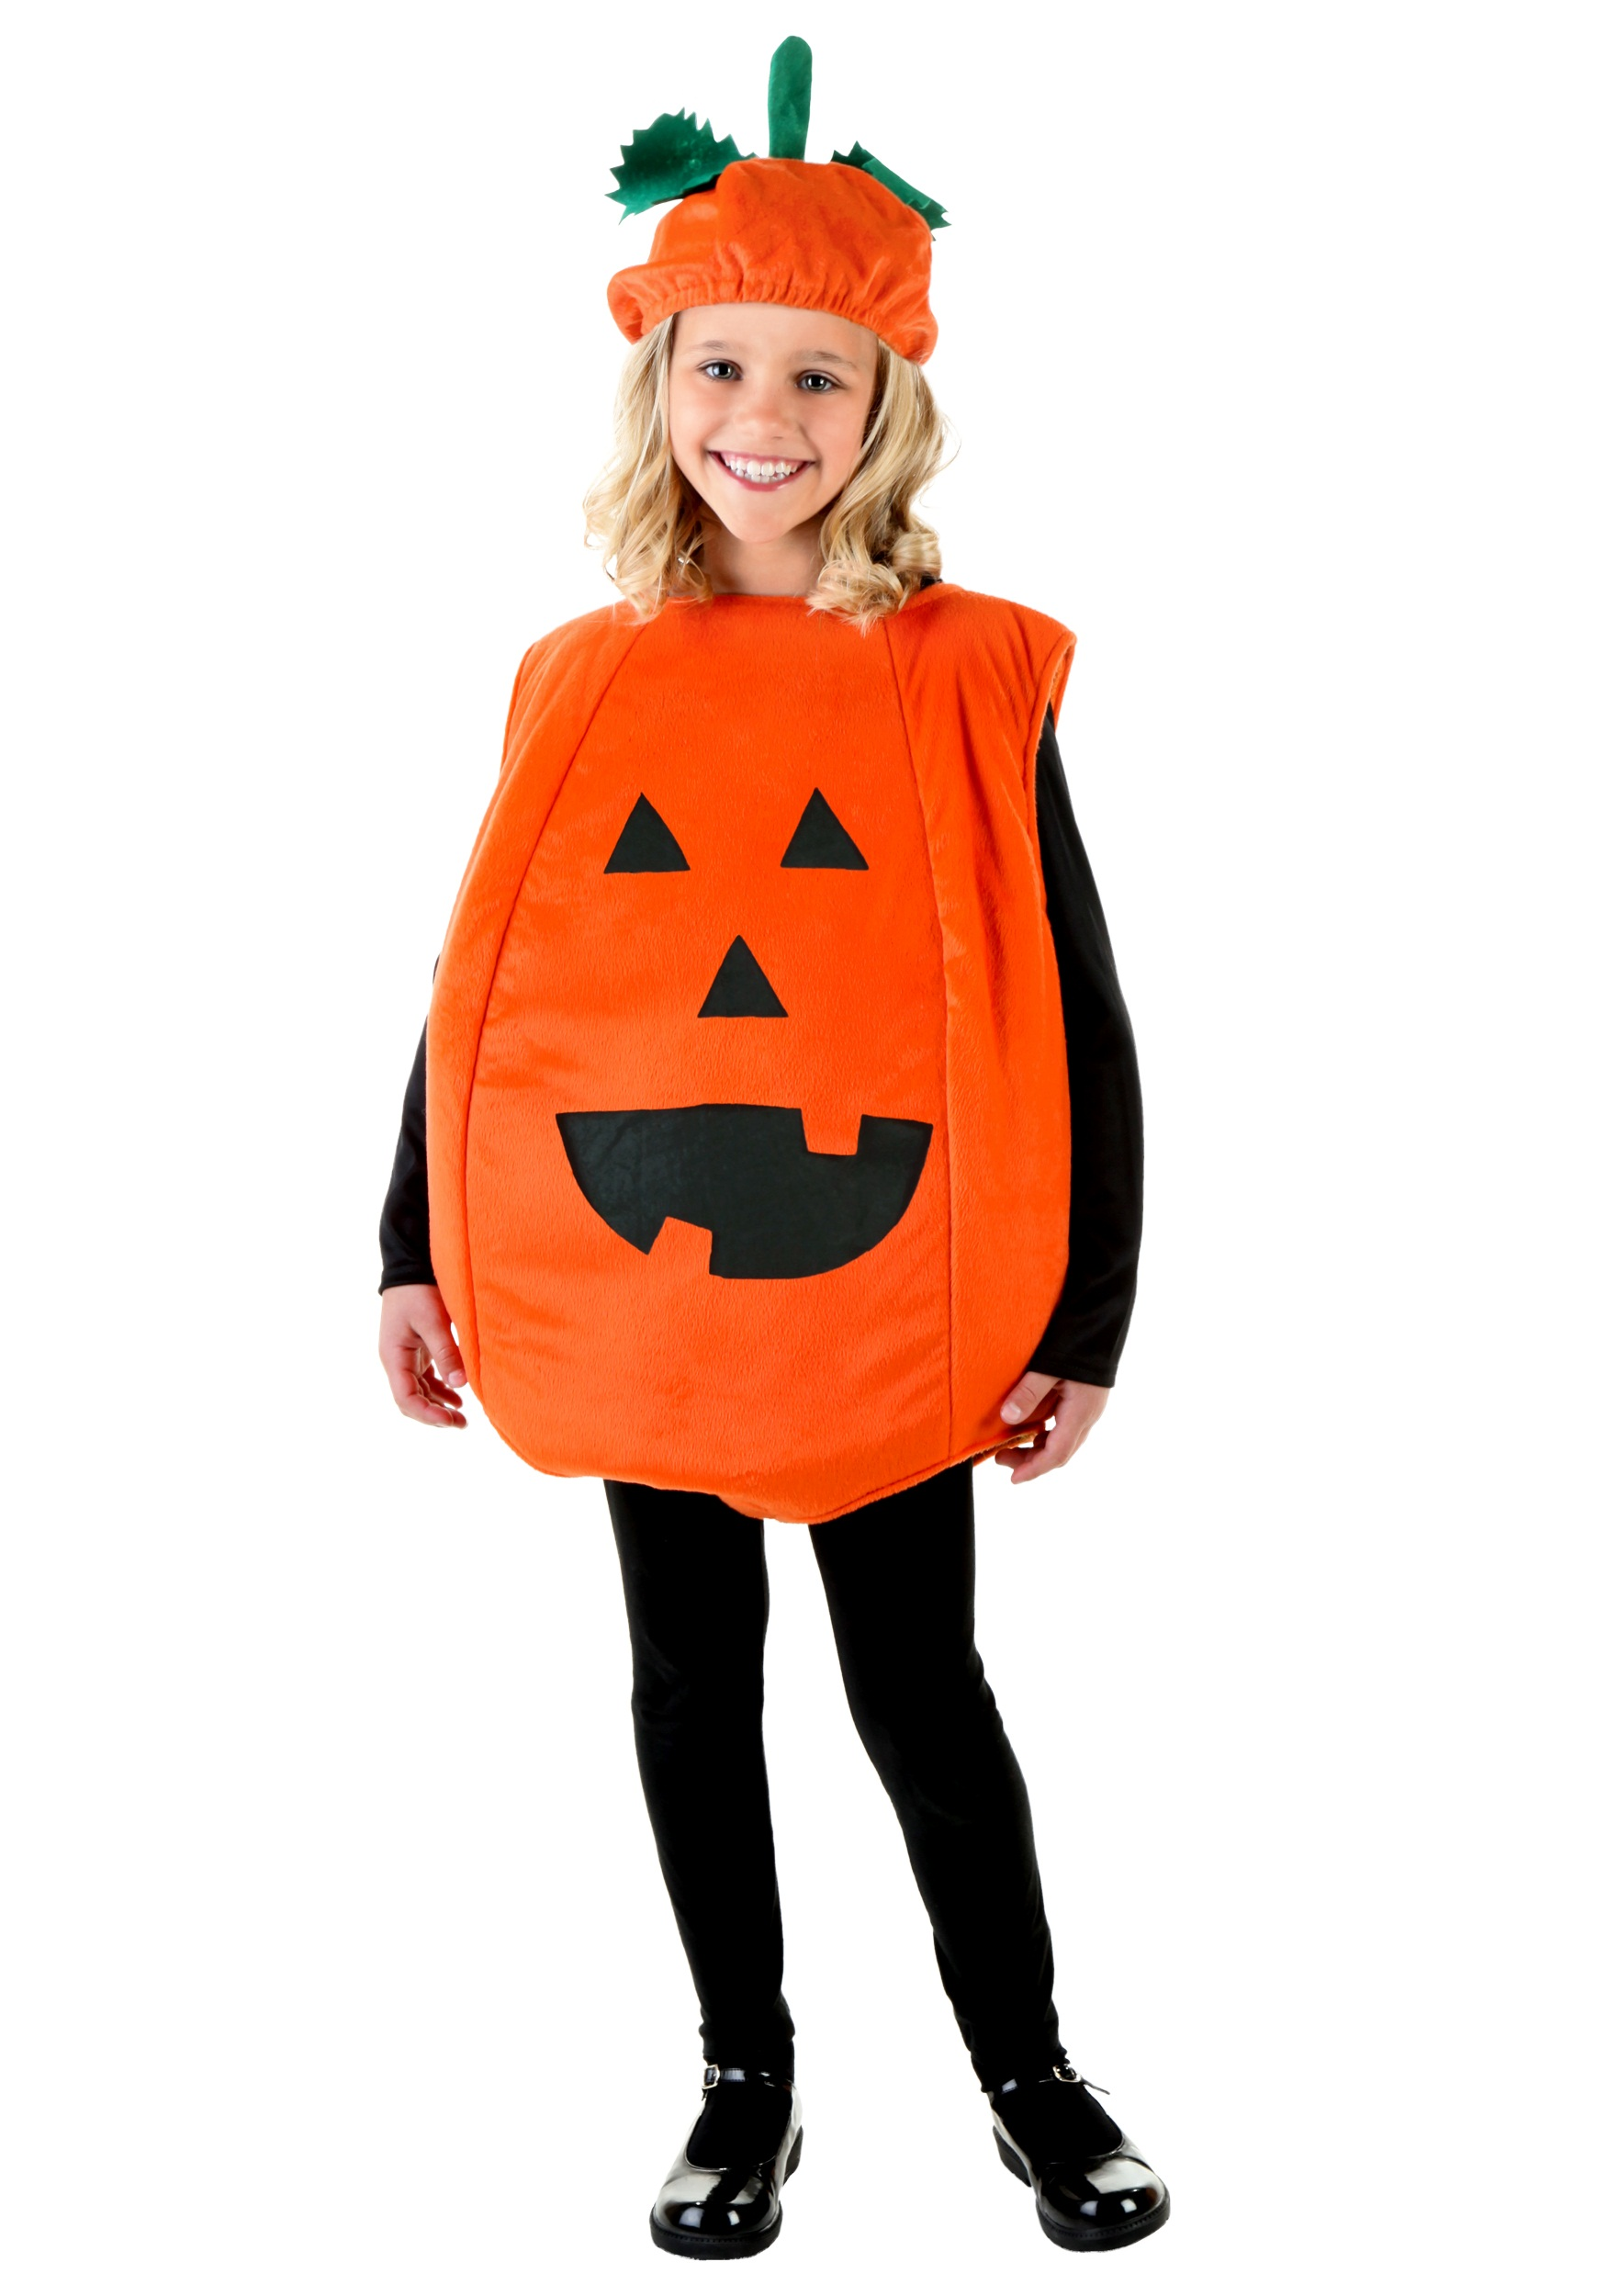 Pumpkin costume photo